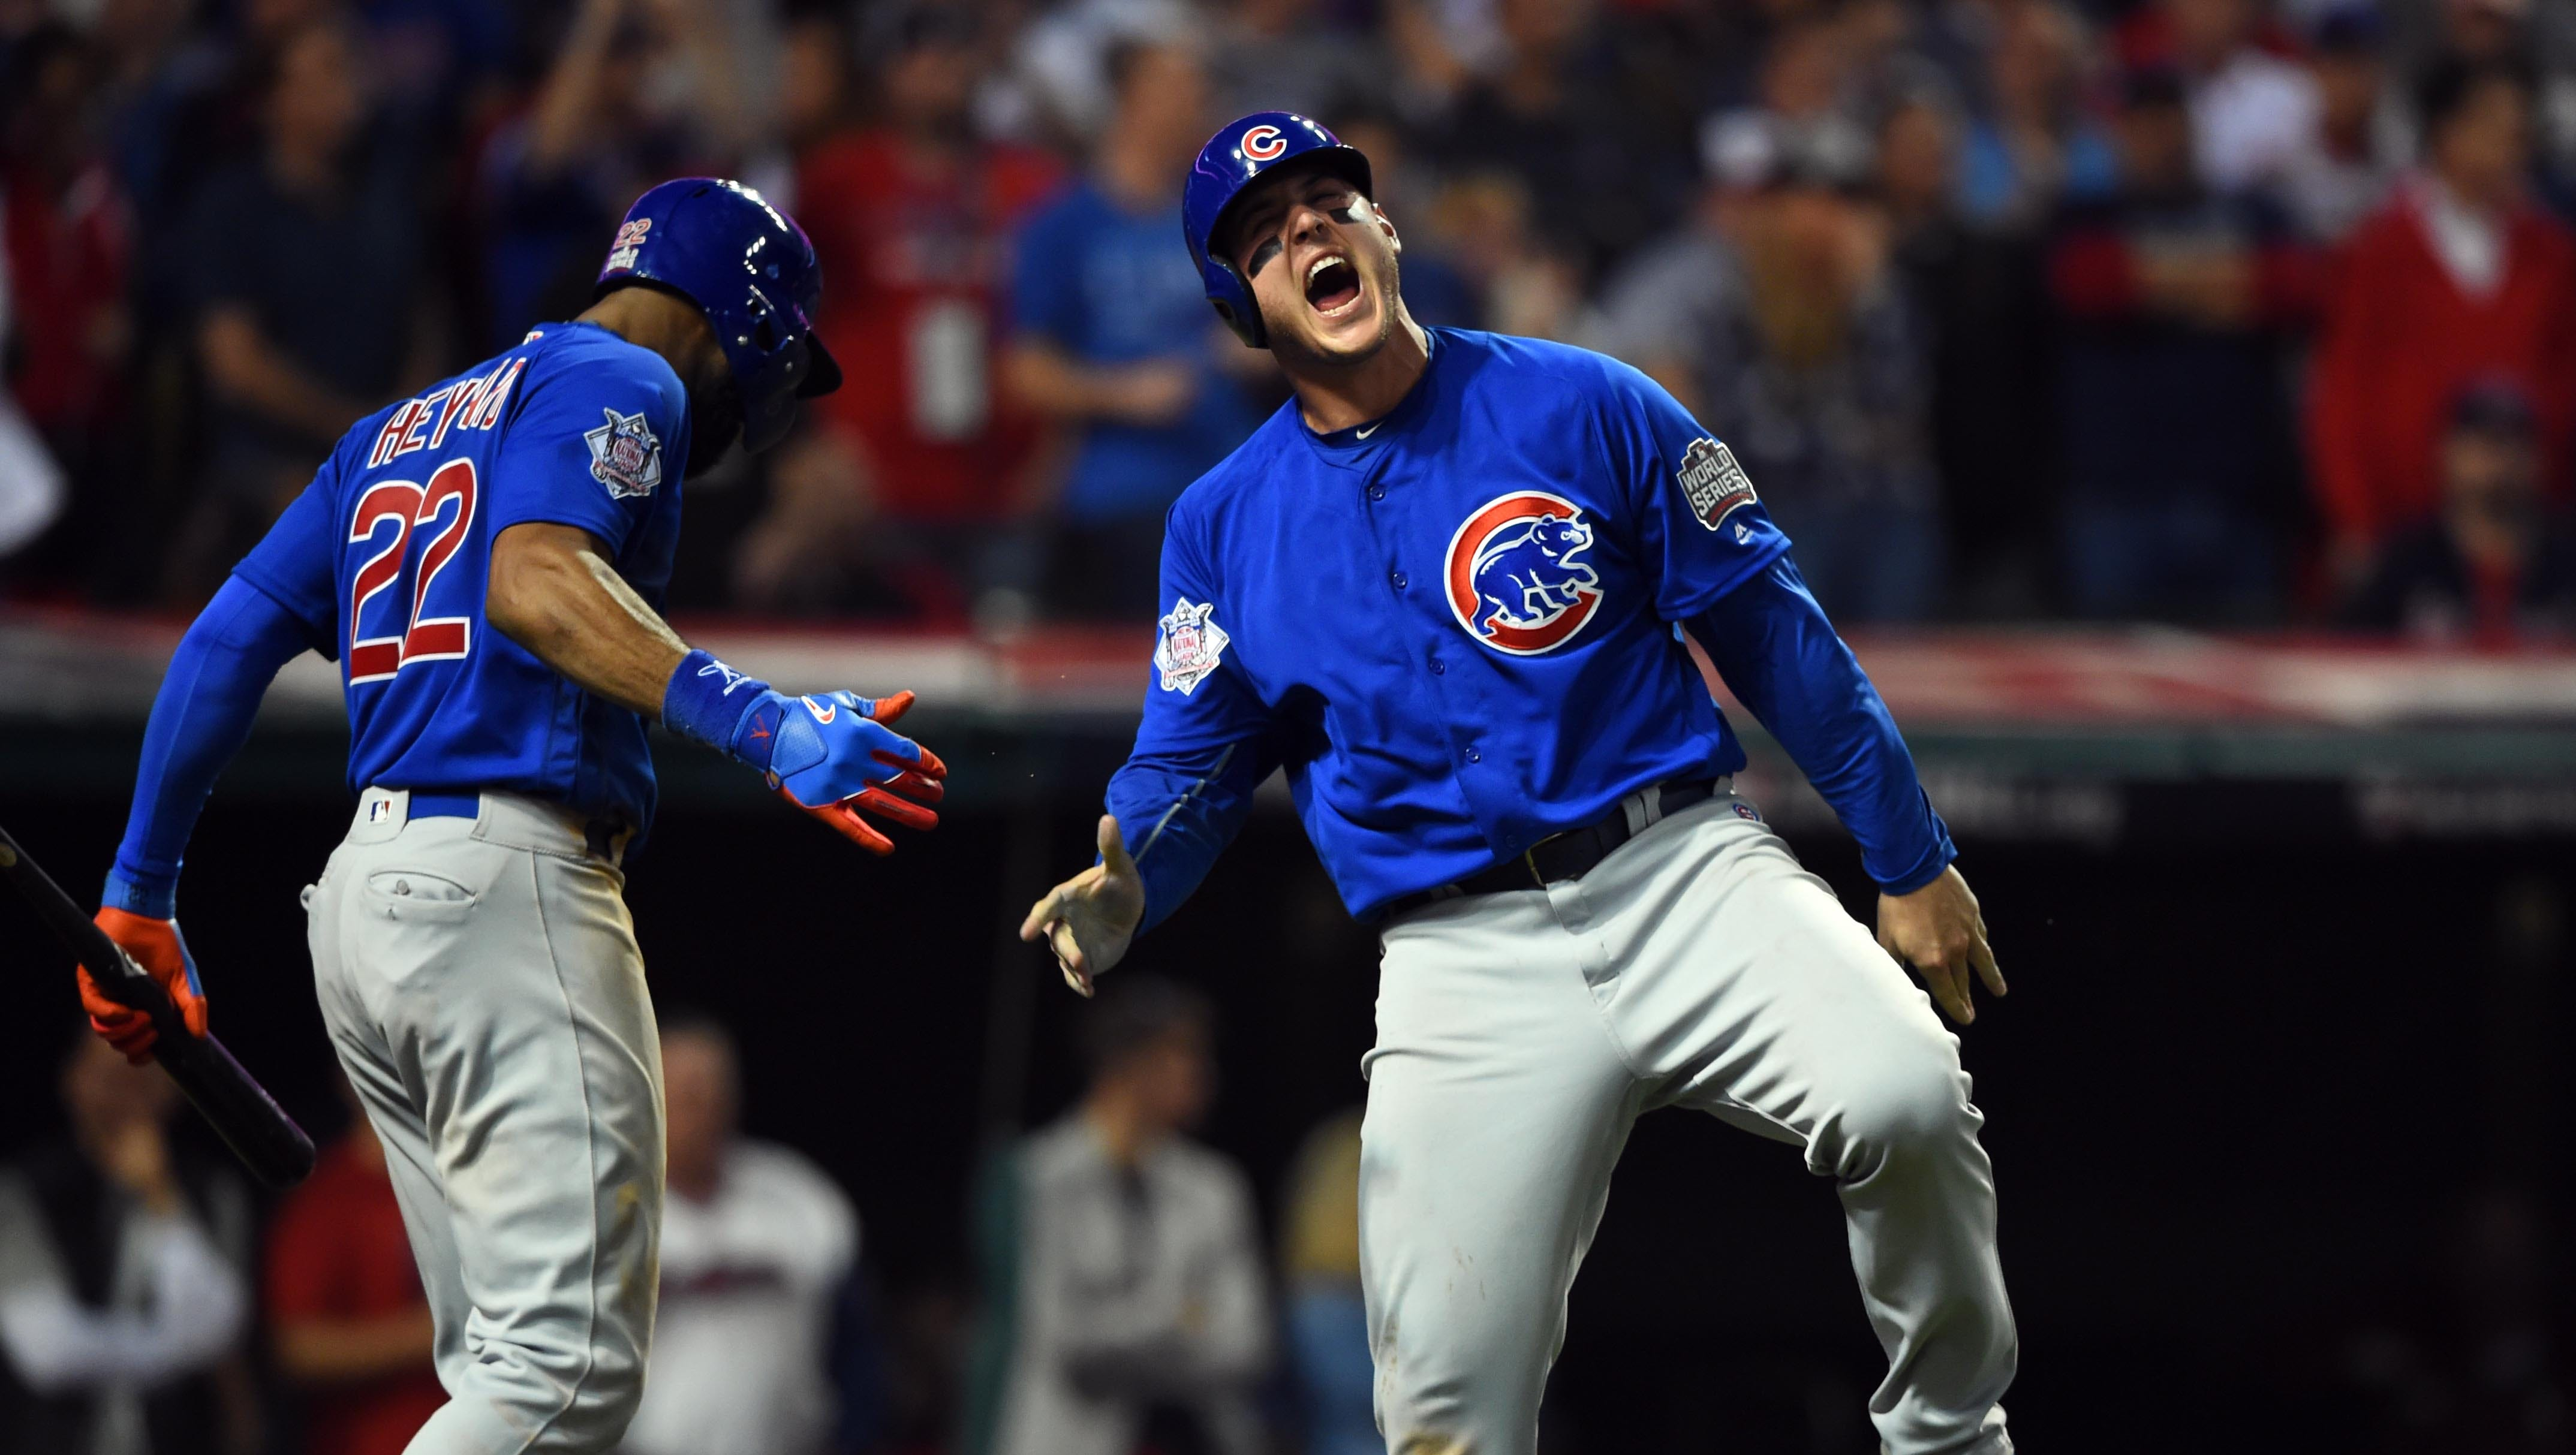 Narrative changes for Cubs fans and their Series champions